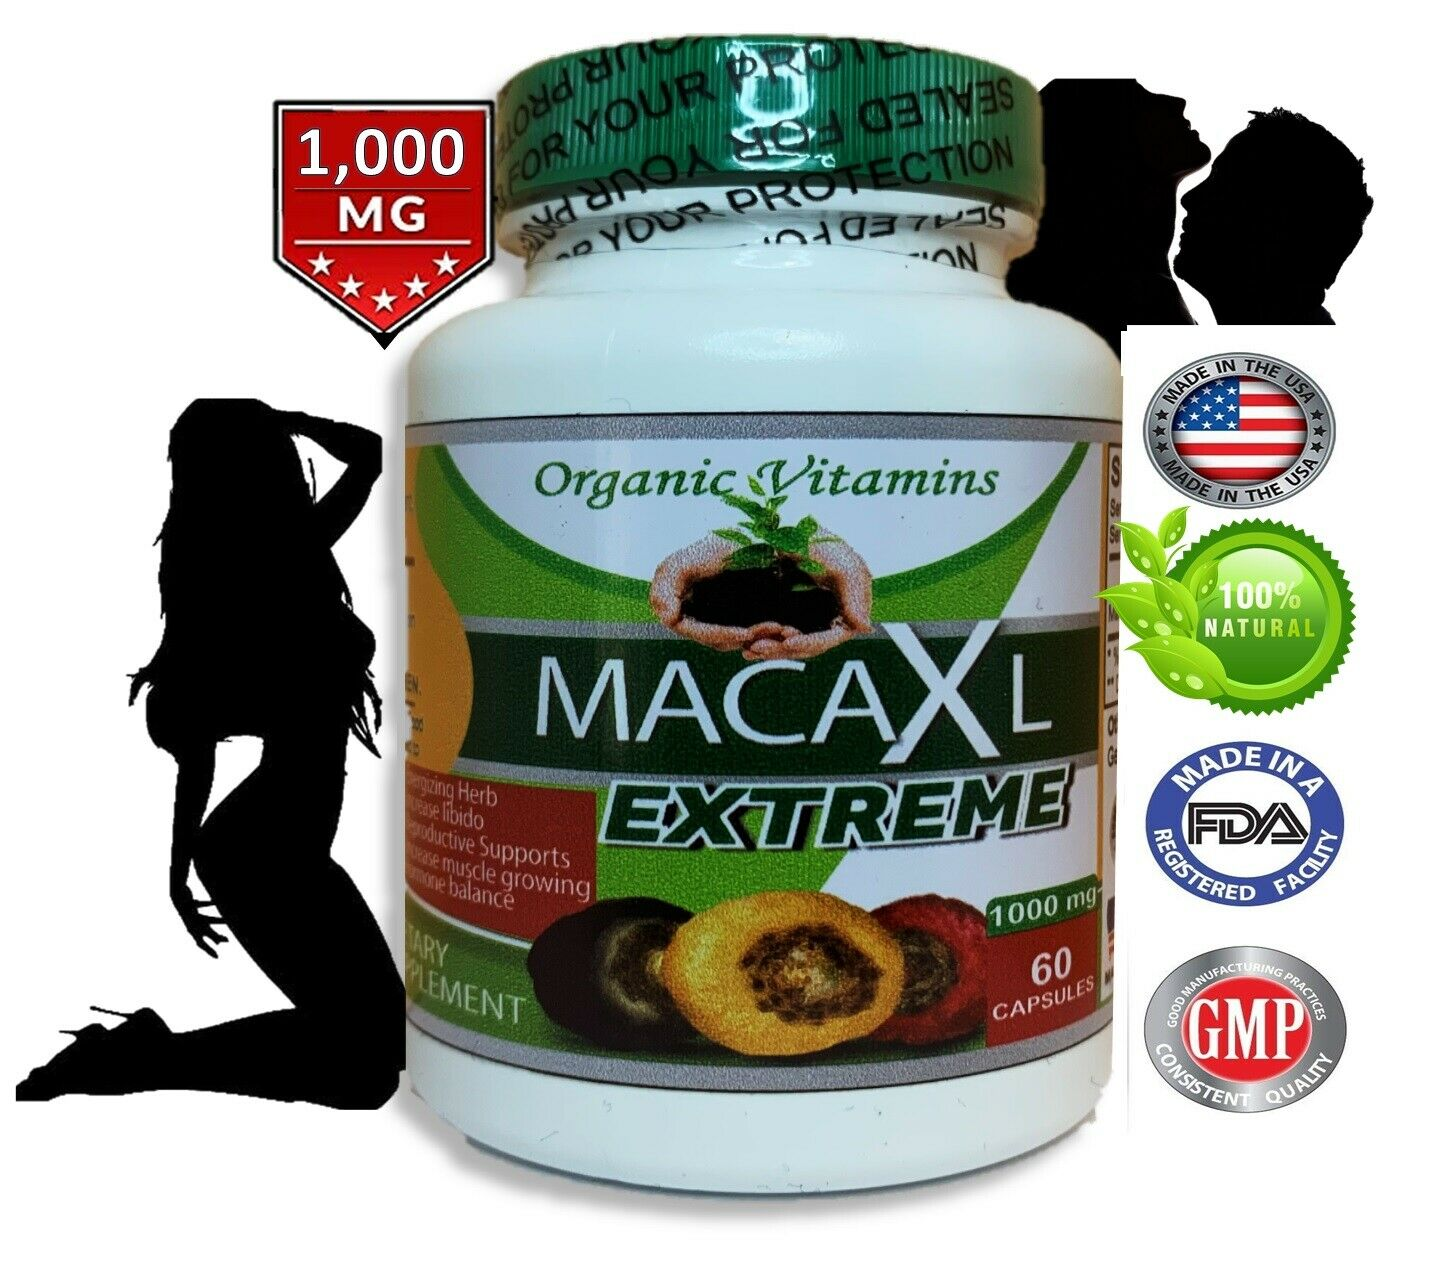 Organic vitamins Maca 1000mg extract 60 caps gold red black blend Energizing Her 4